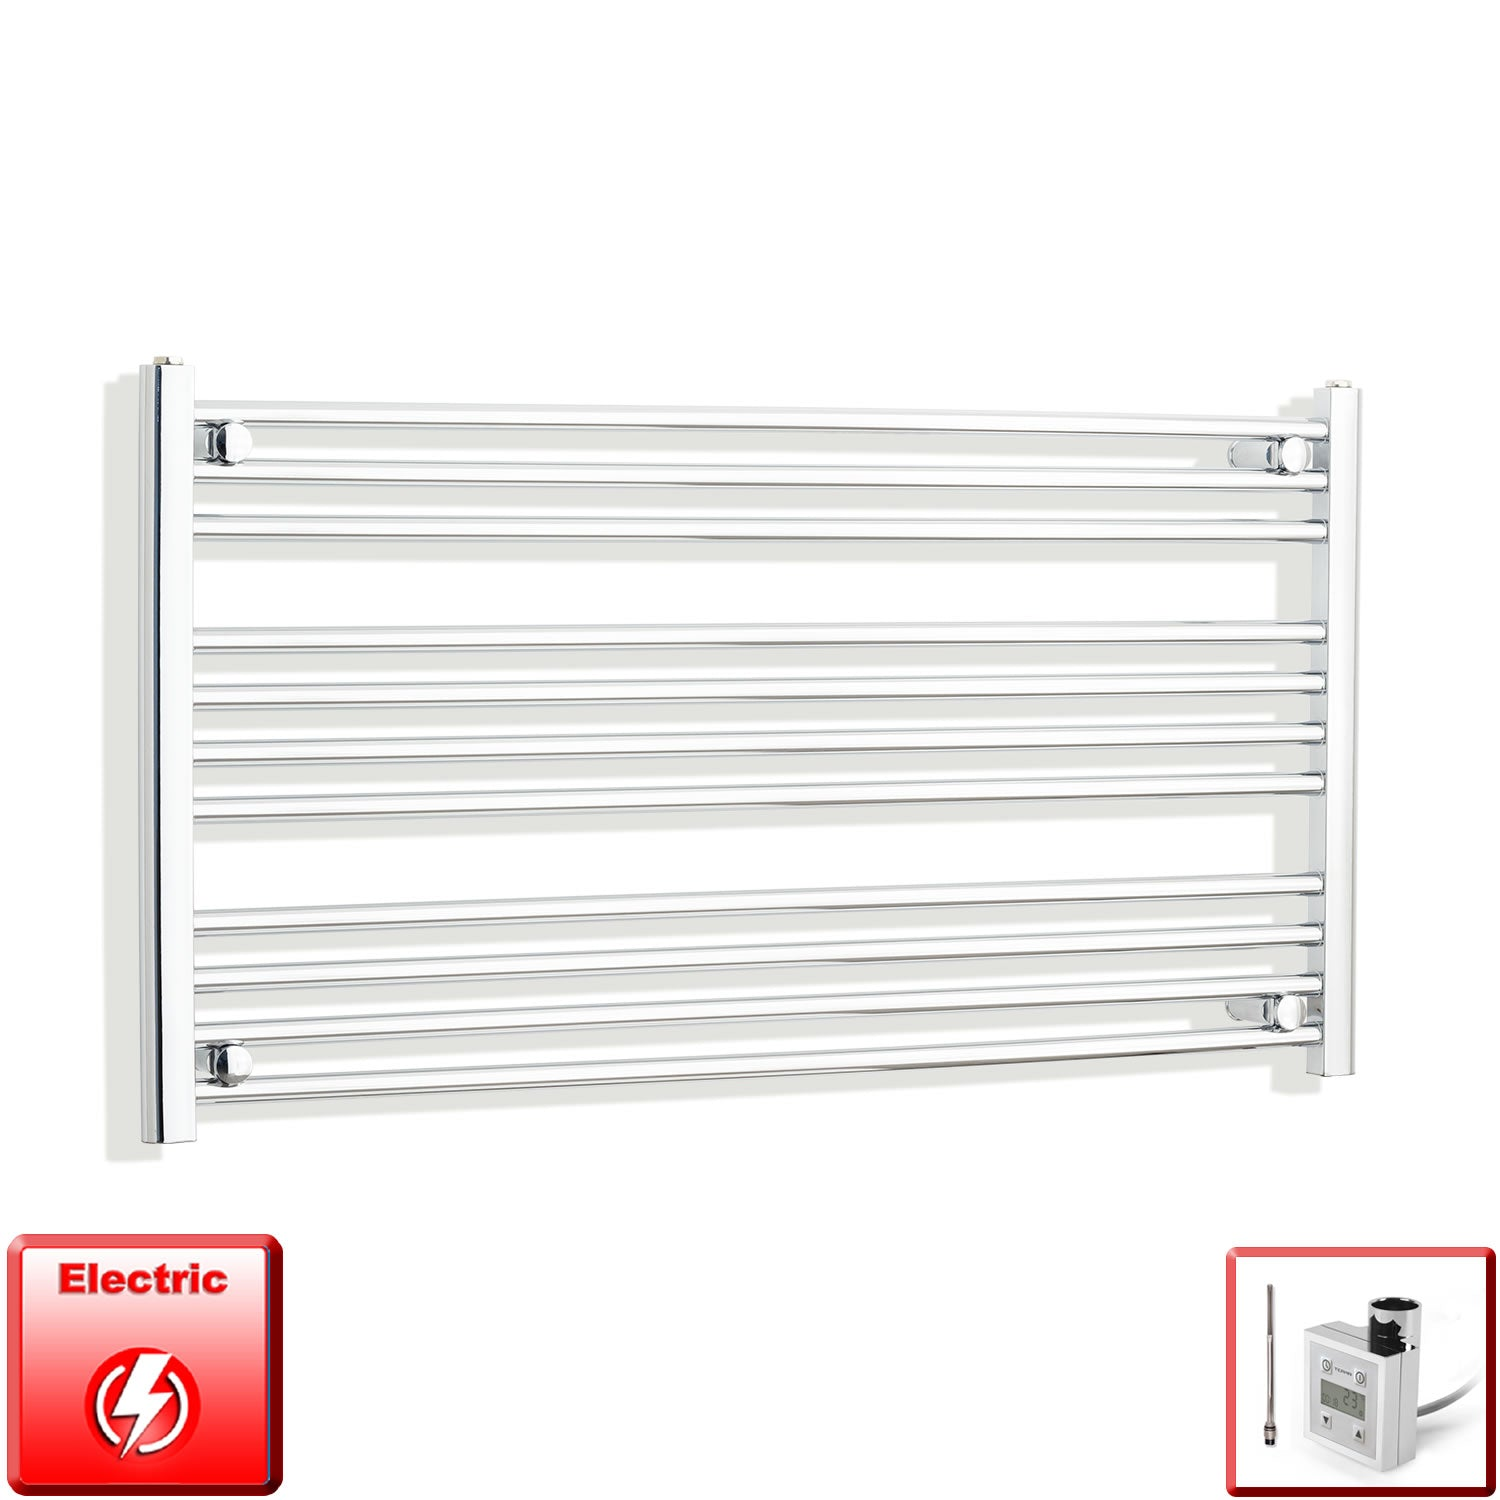 1200mm Wide 600mm High Flat Chrome Pre-Filled Electric Heated Towel Rail Radiator HTR,KTX-3 Thermostatic Element